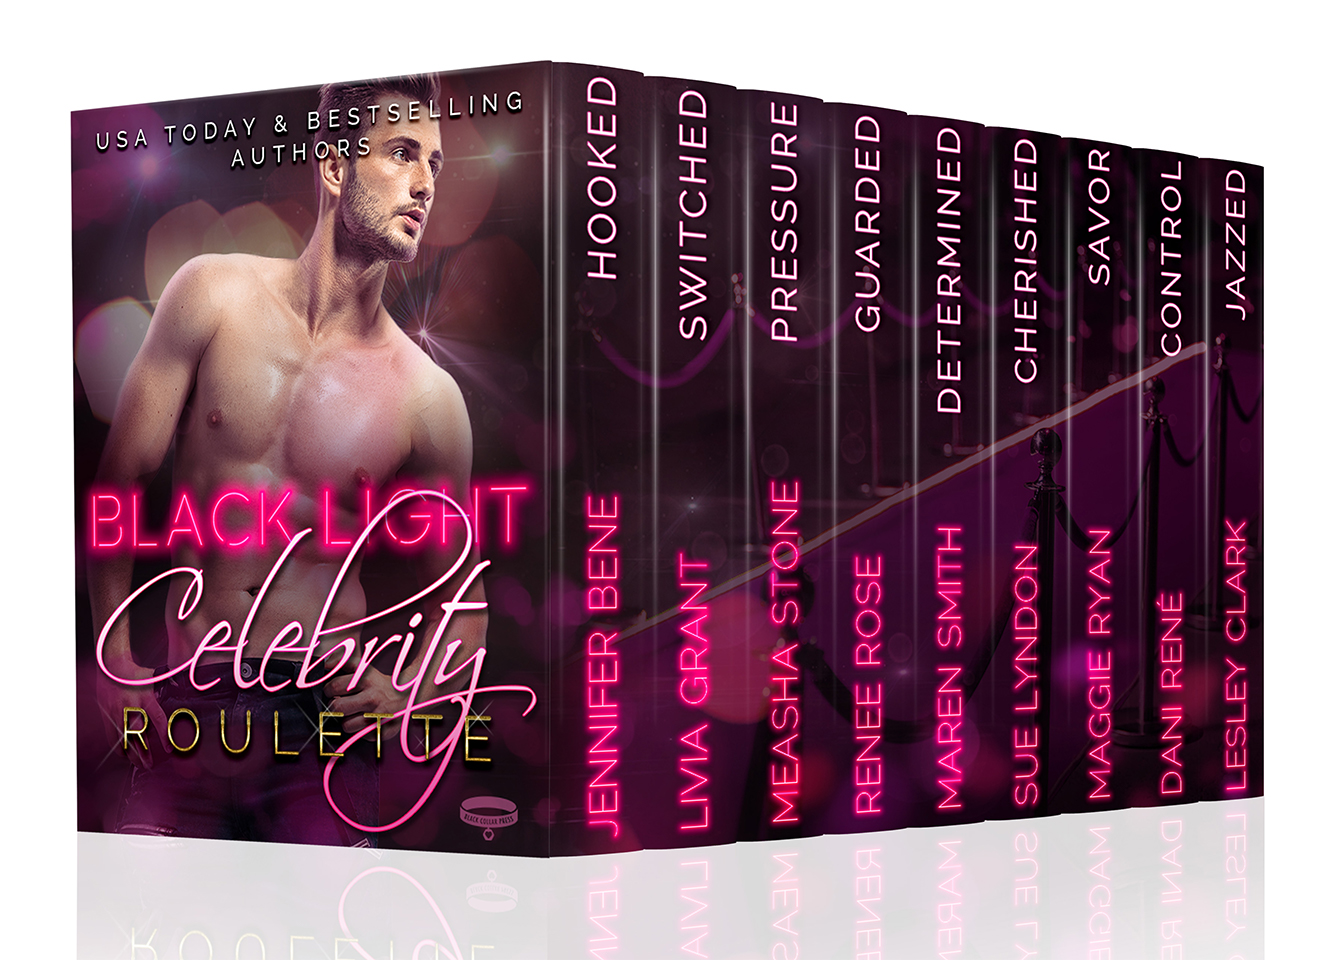 Black Light: Celebrity Roulette from Black Collar Press